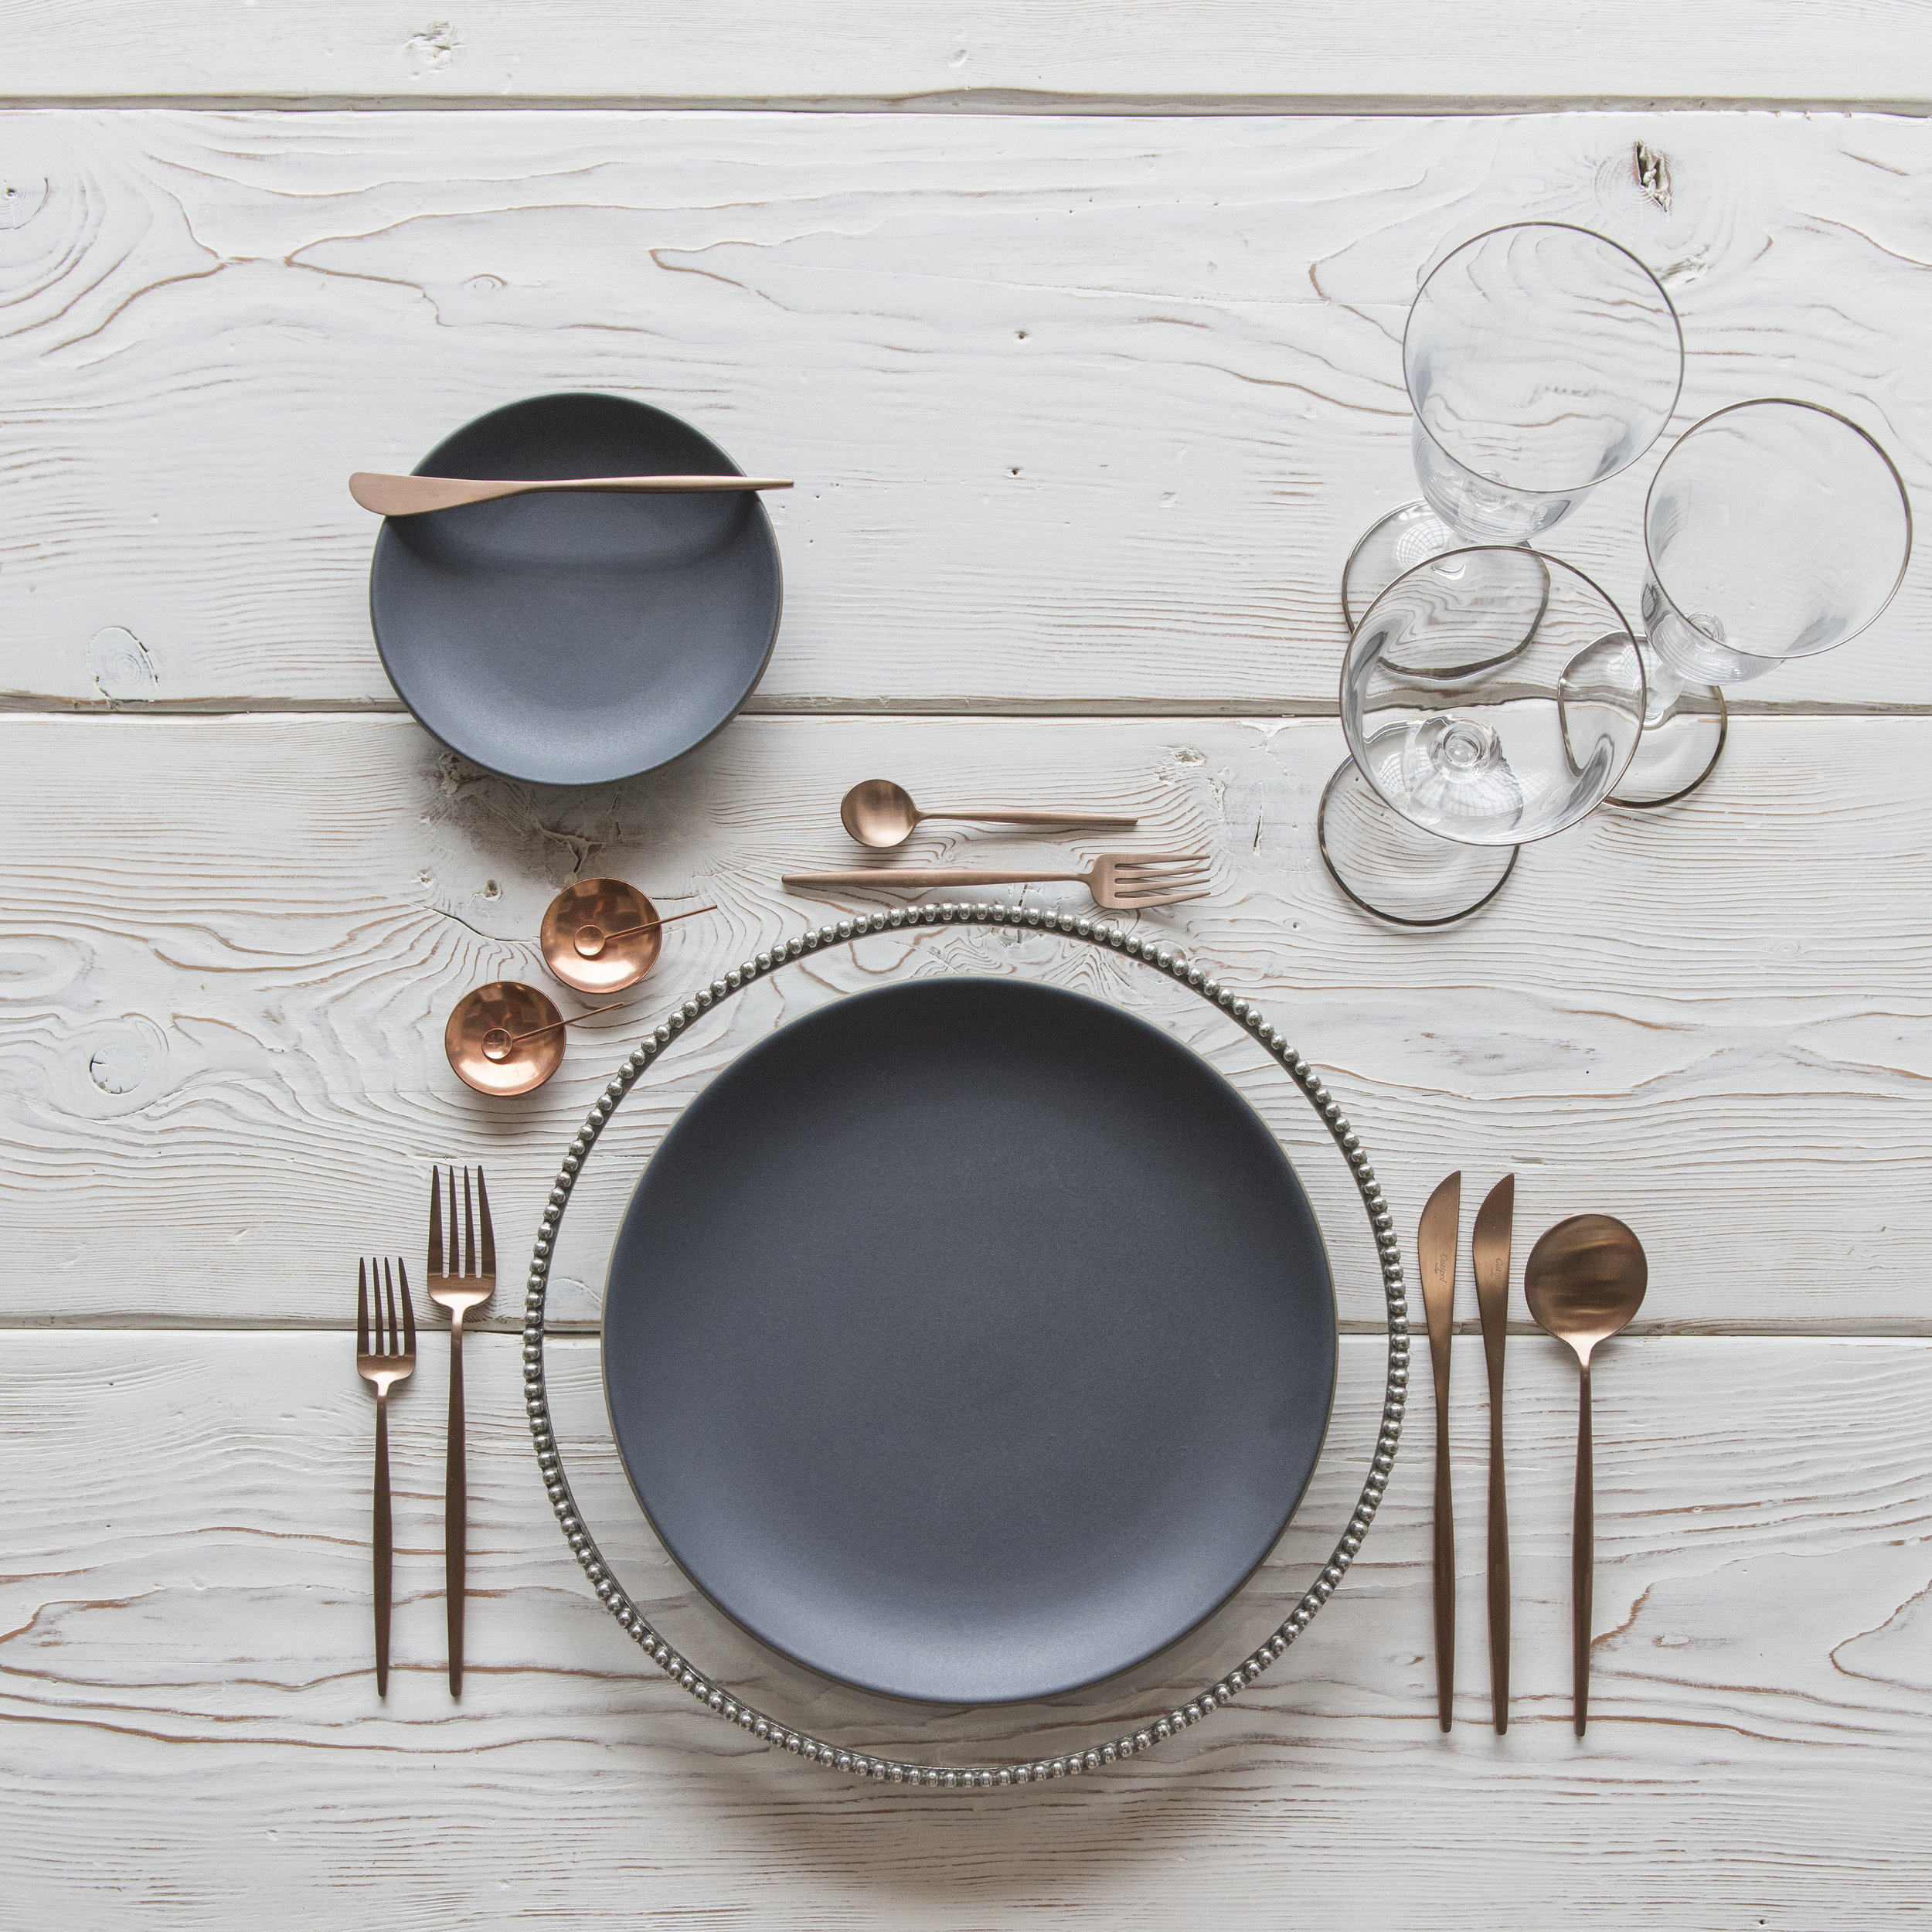 RENT: Halo Glass Chargers in Platinum + Heath Ceramics in Indigo/Slate + Moon Flatware in Brushed Rose Gold + Chloe Platinum Rimmed Stemware + Copper Salt Cellars + Tiny Copper Spoons   SHOP: Halo Glass Chargers in Platinum + Moon Flatware in Brushed Rose Gold + Chloe Platinum Rimmed Stemware + Copper Salt Cellars + Tiny Copper Spoons